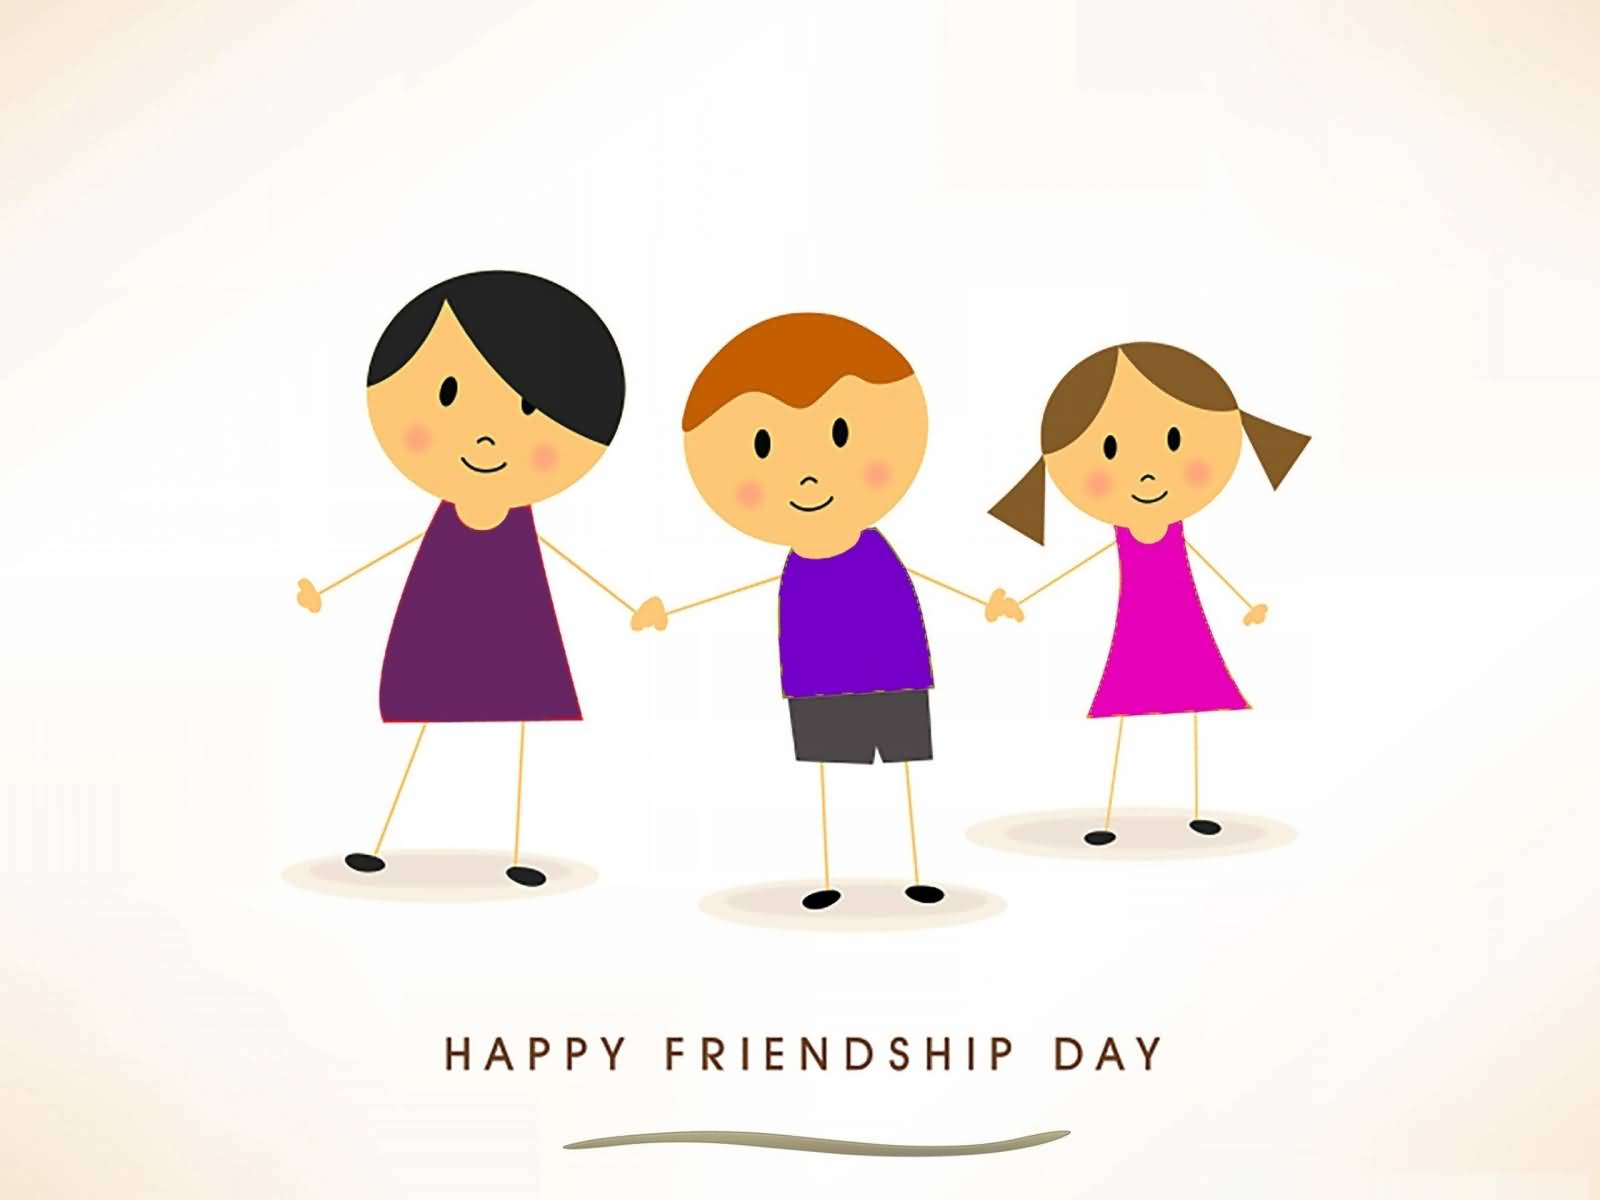 70 Best Happy Friendship Day Greetings To Share With Friends